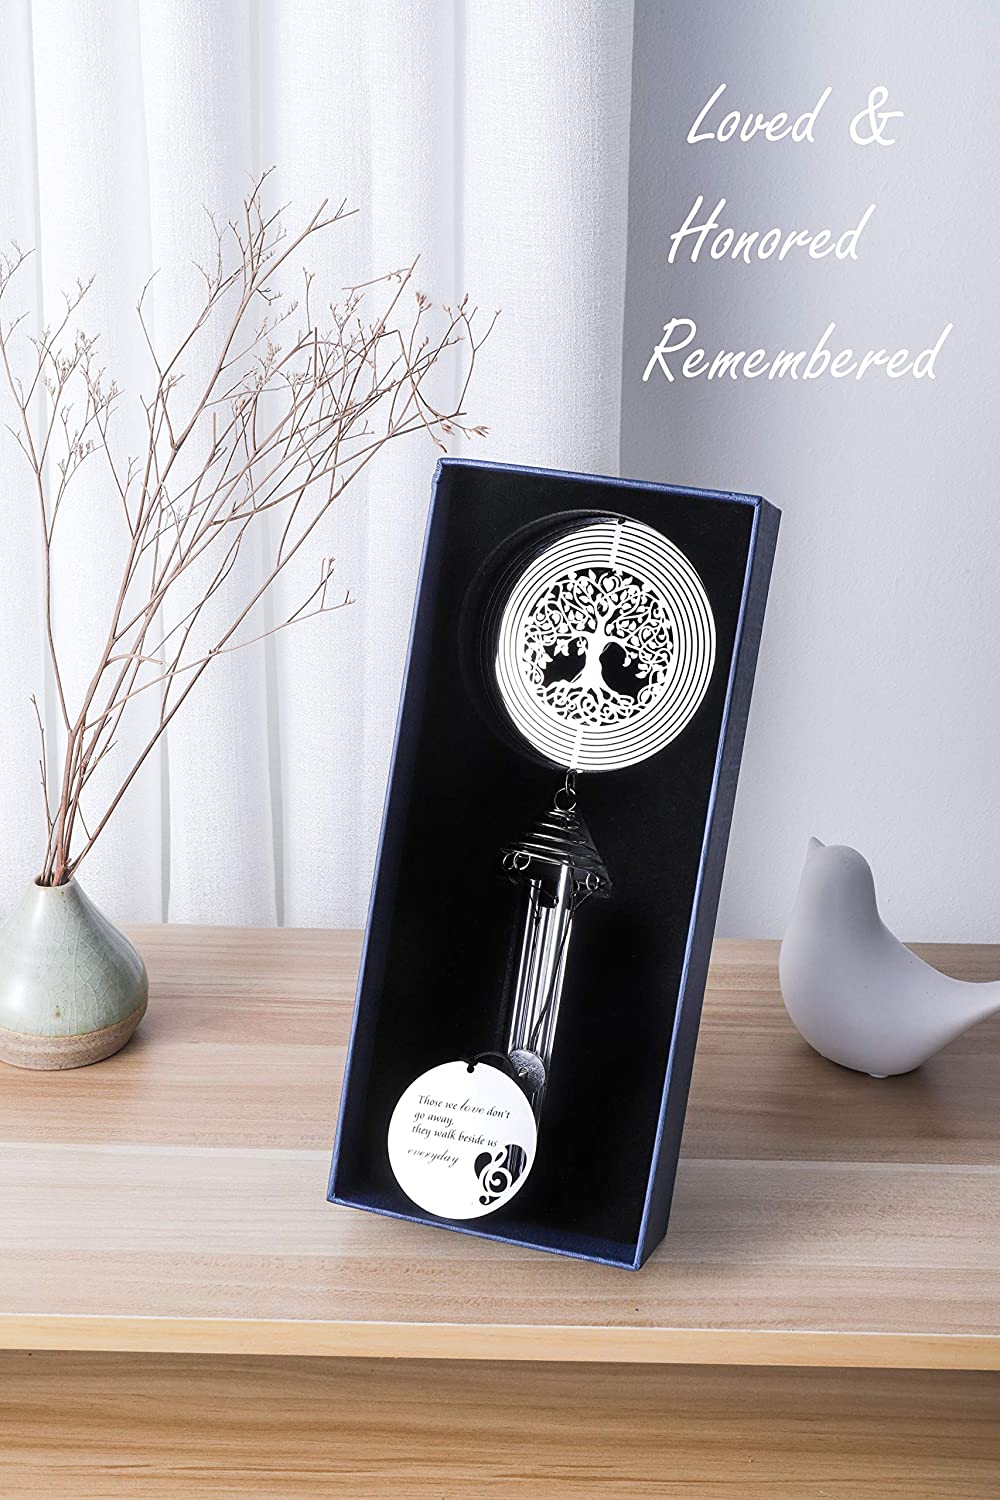 Memorial Wind Chimes for Loss of Loved One Memorial Gifts Sympathy Wind Chimes with Life Tree Wind Spinner Bereavement Gifts Ideal Sympathy Gift